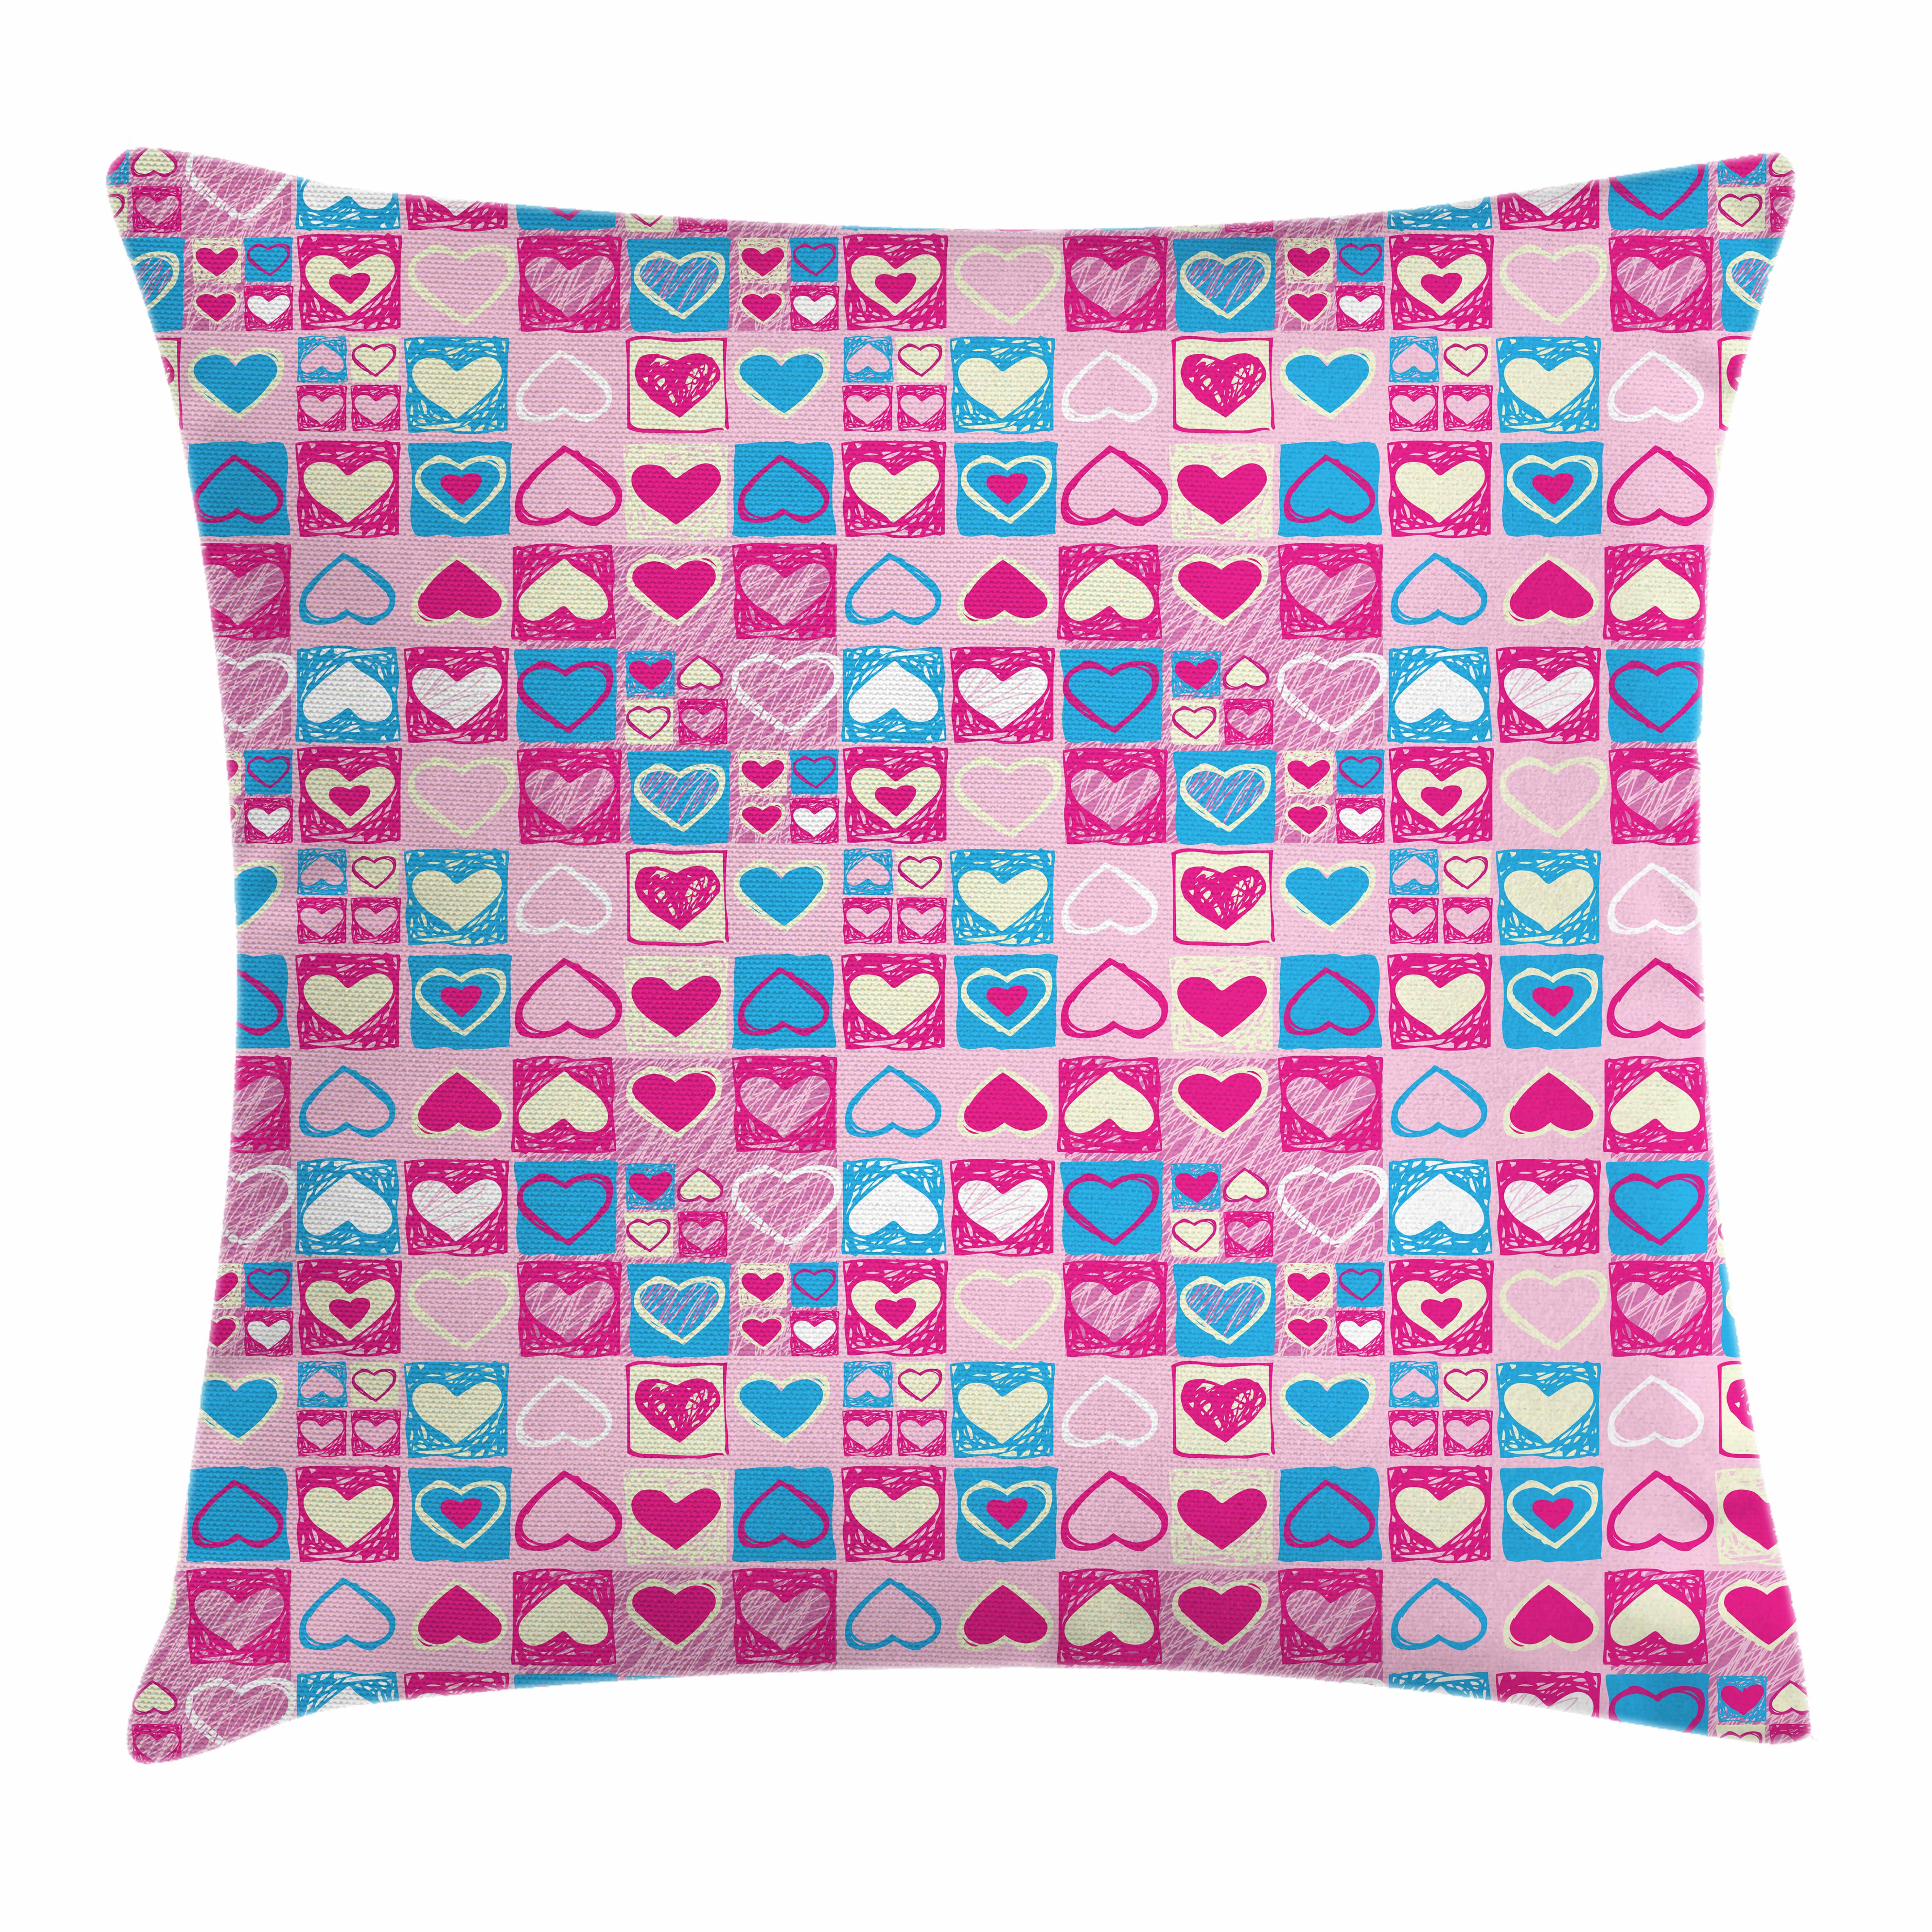 Love Throw Pillow Cushion Cover, Doodle Sketchy Hearts in Squares Artistic Childish Romance Girls Kids Design, Decorative Square Accent Pillow Case, 16 X 16 Inches, Pink Blue Cream, by Ambesonne